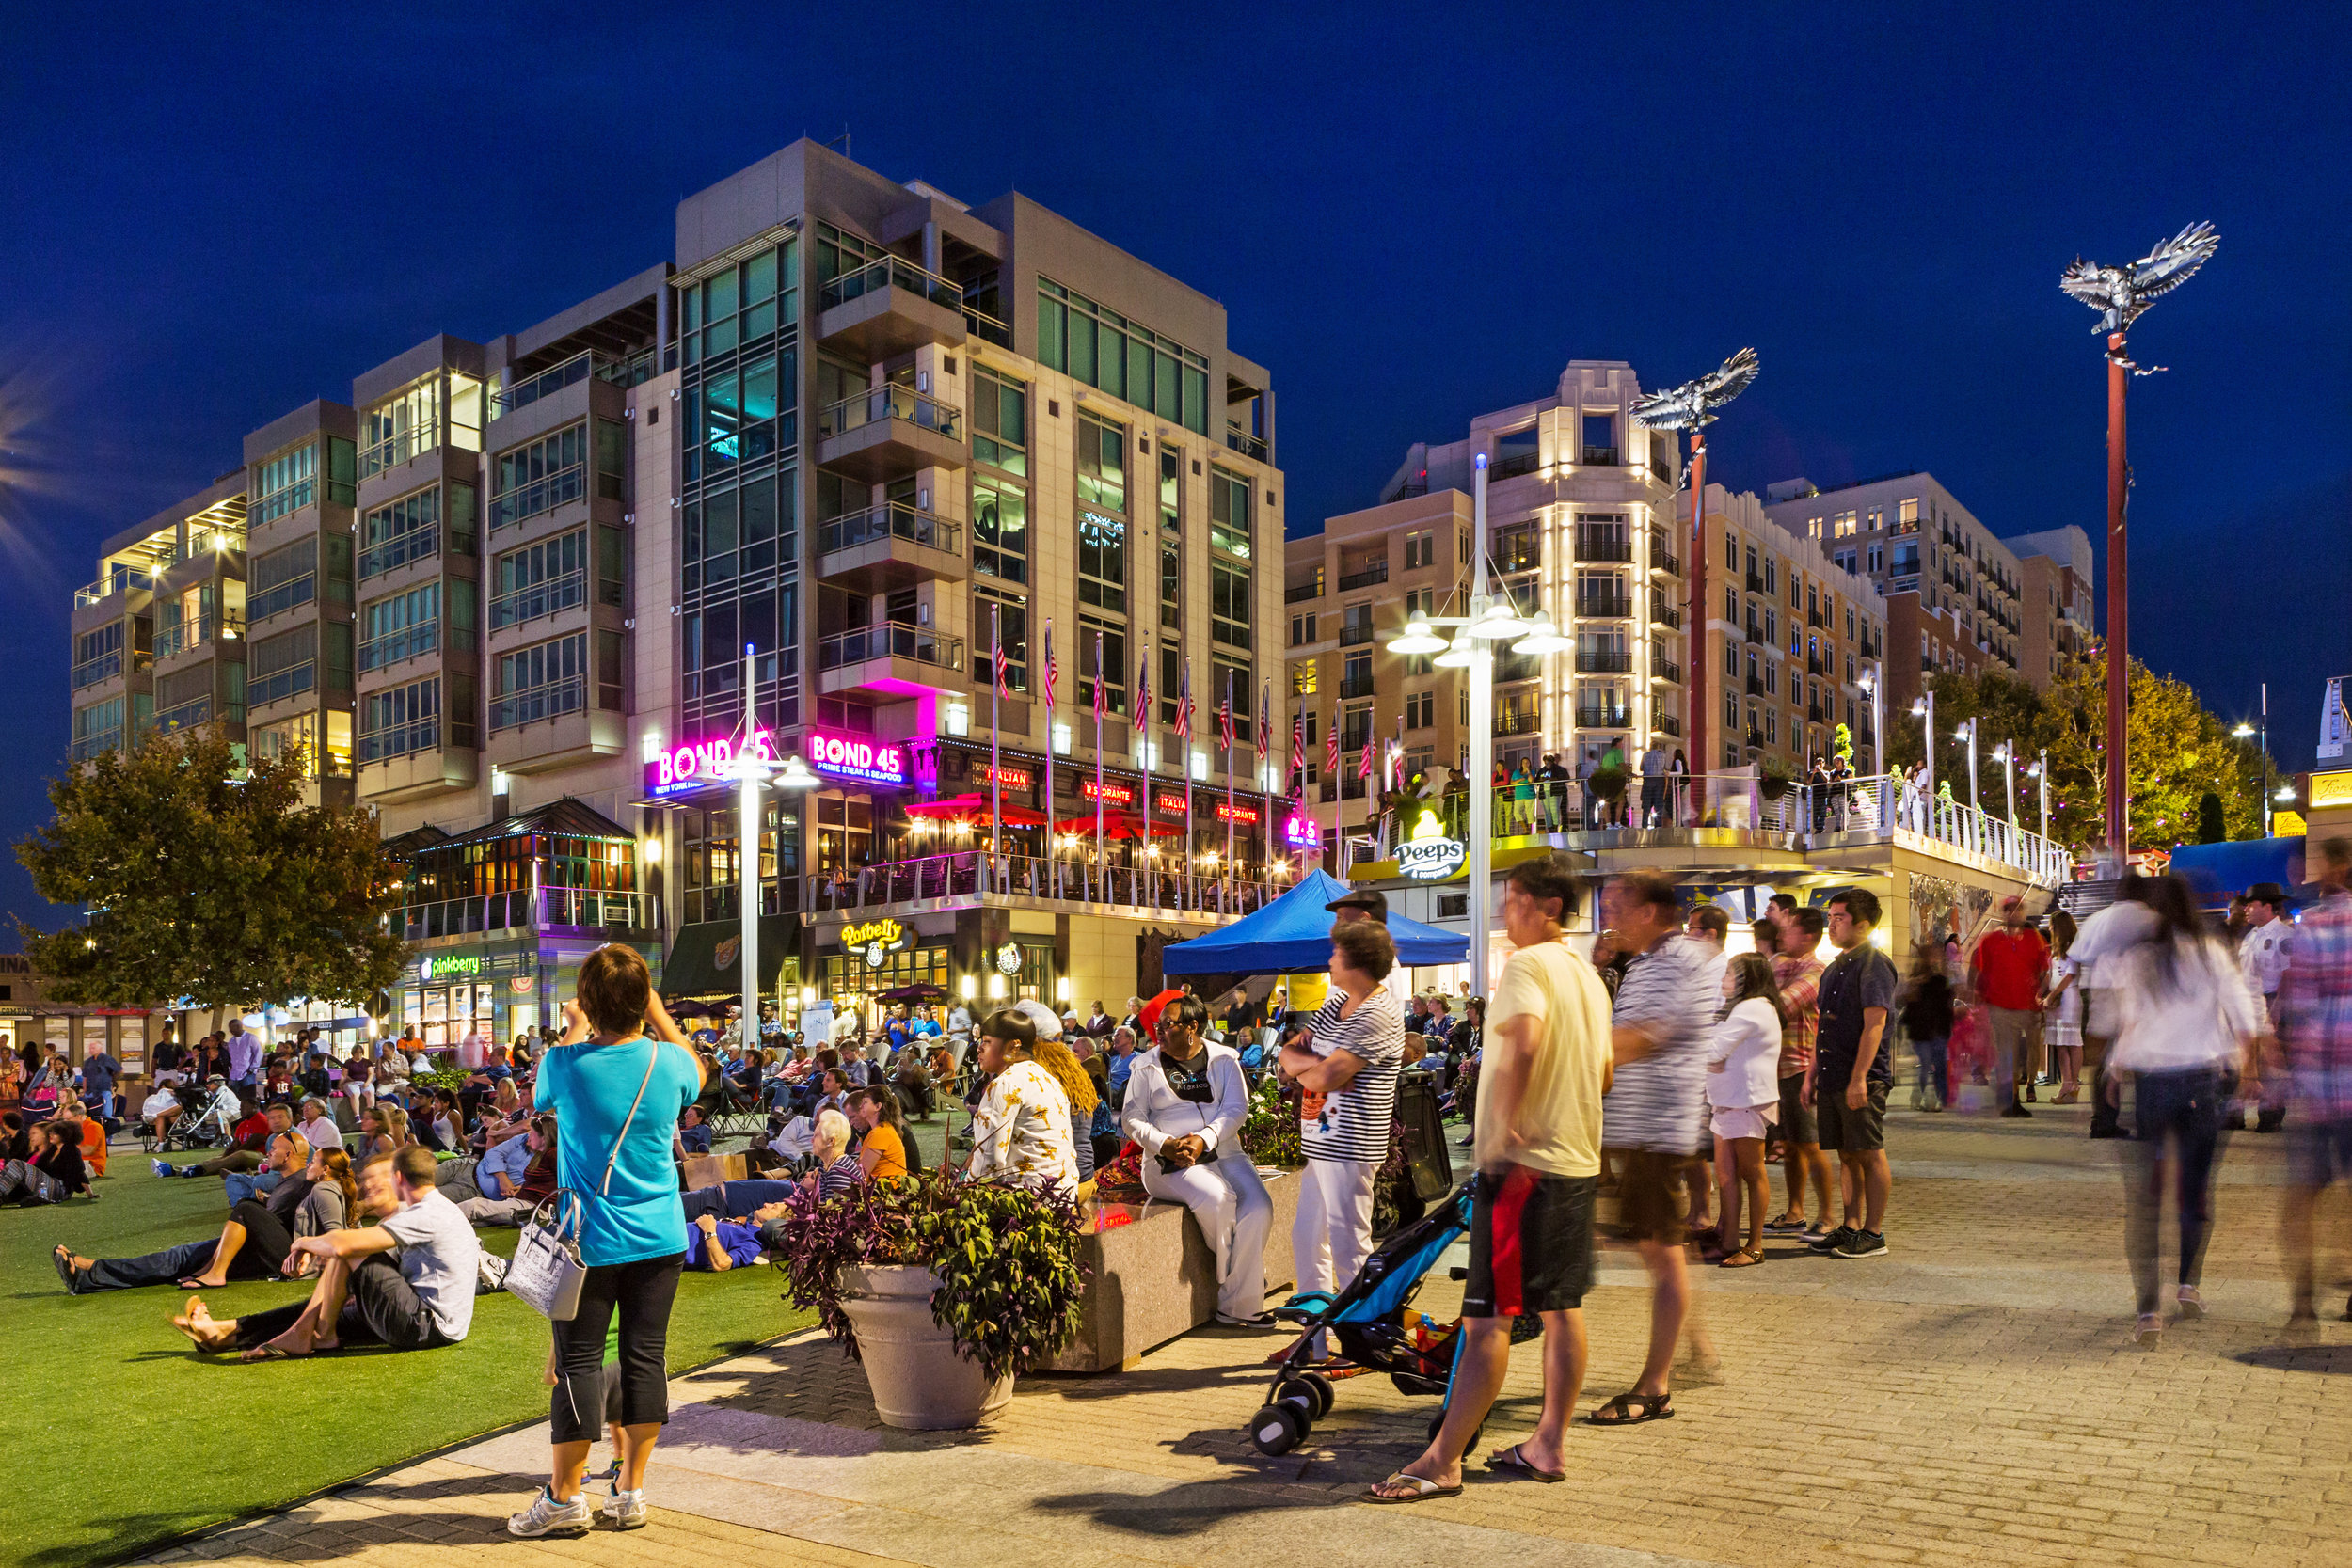 NATIONAL_waterfront crowd-DR.jpg